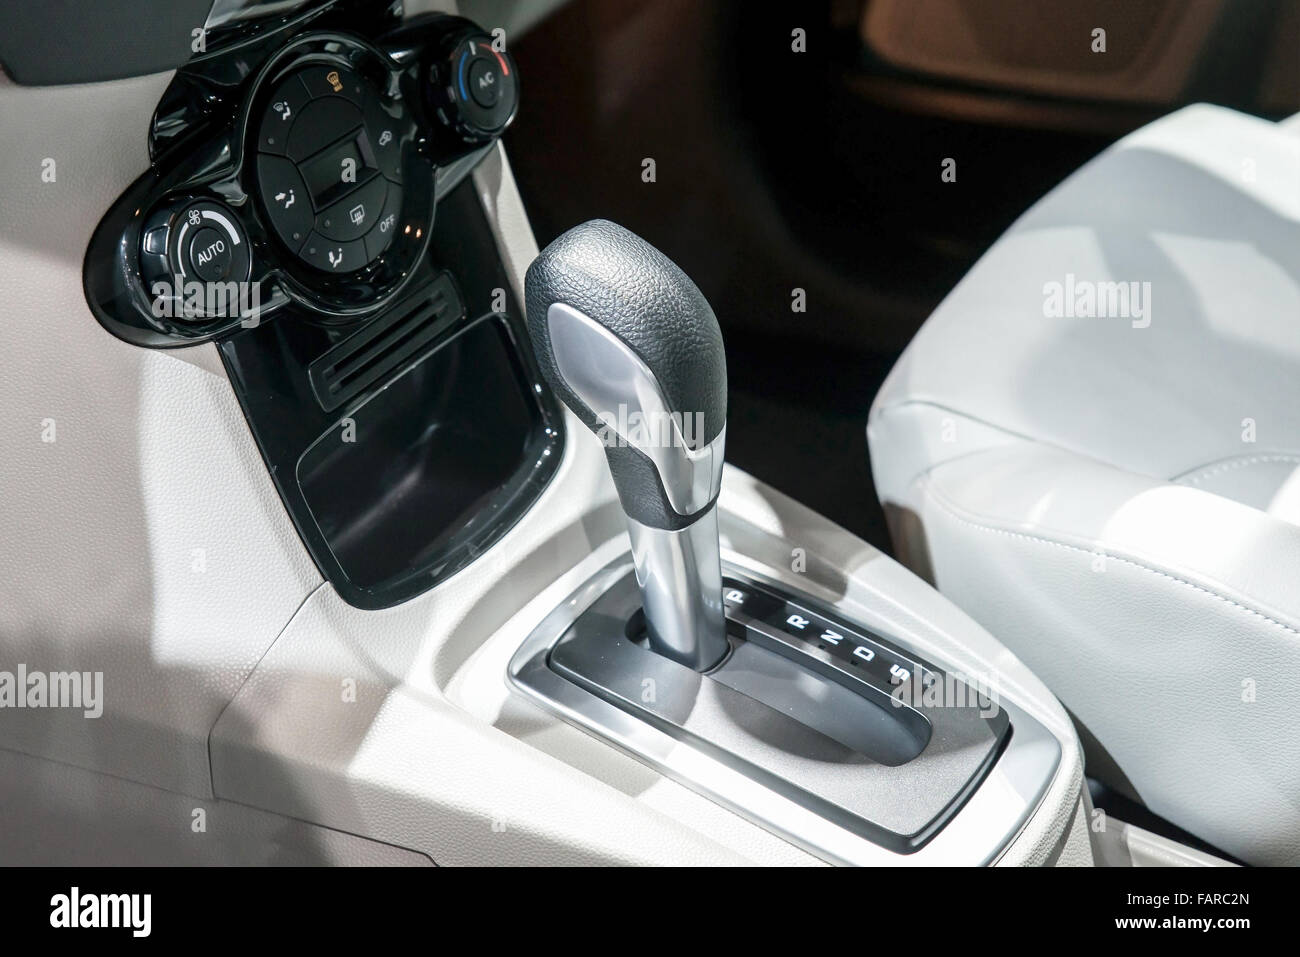 Gear Shift Stock Photos Gear Shift Stock Images Alamy